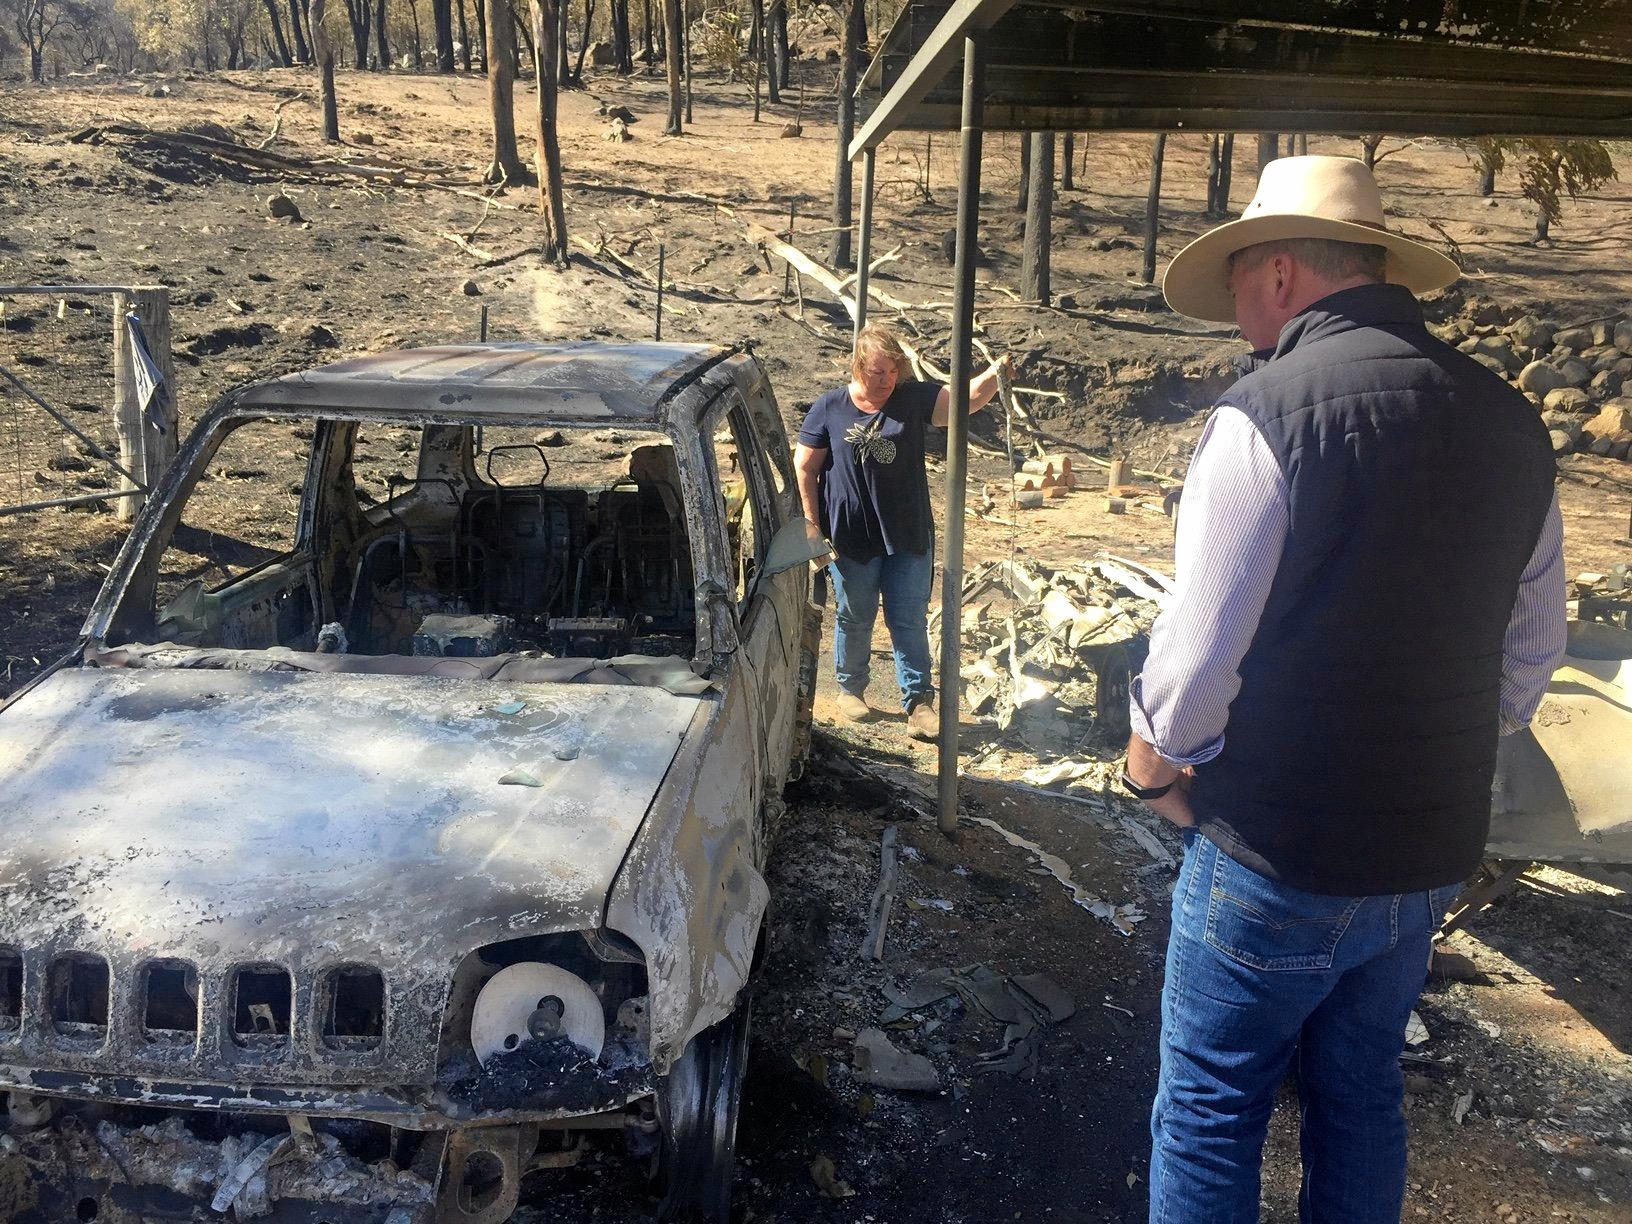 BUSHFIRES: tHE Member for New England, Barnaby Joyce, in Tenterfield on Saturday.